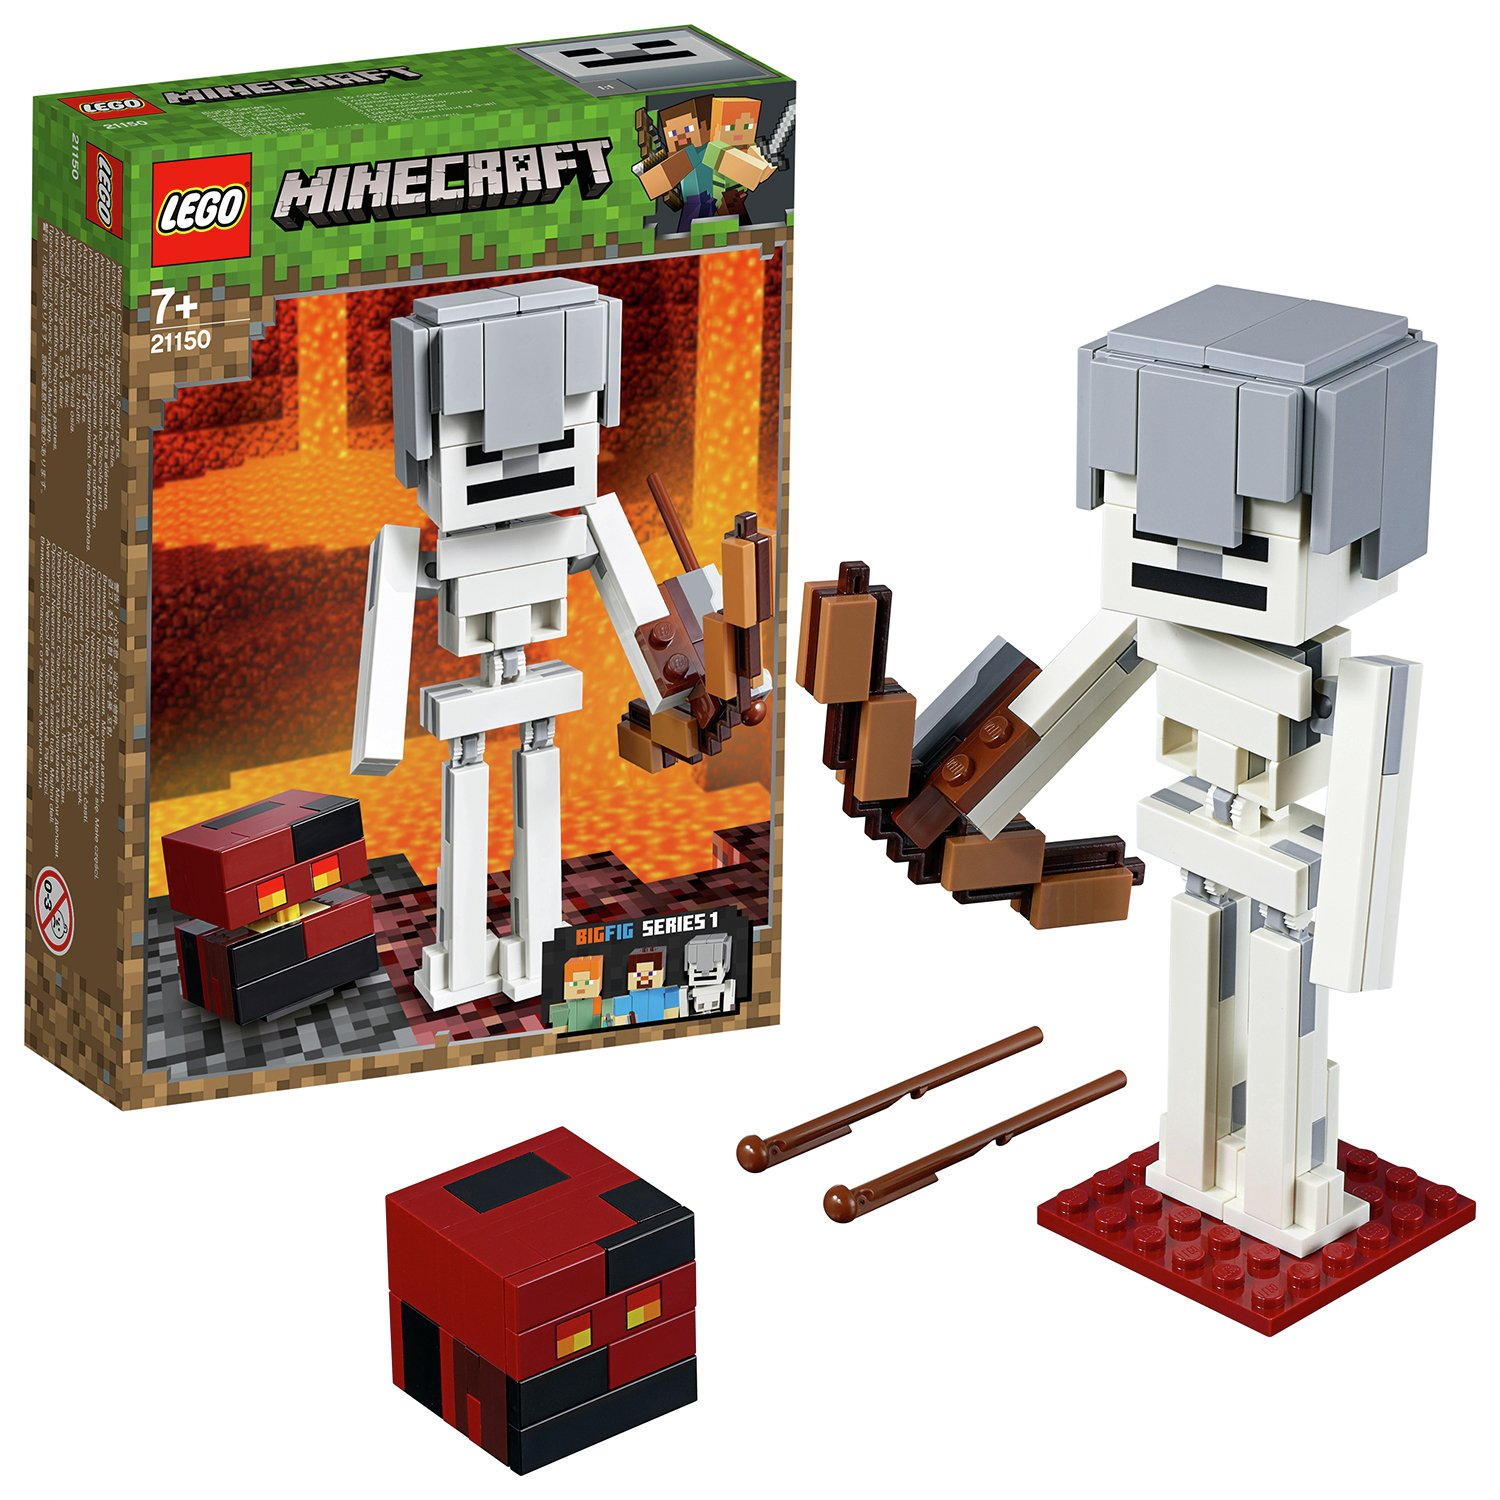 LEGO Minecraft Skeleton Figure Building Set - 21150